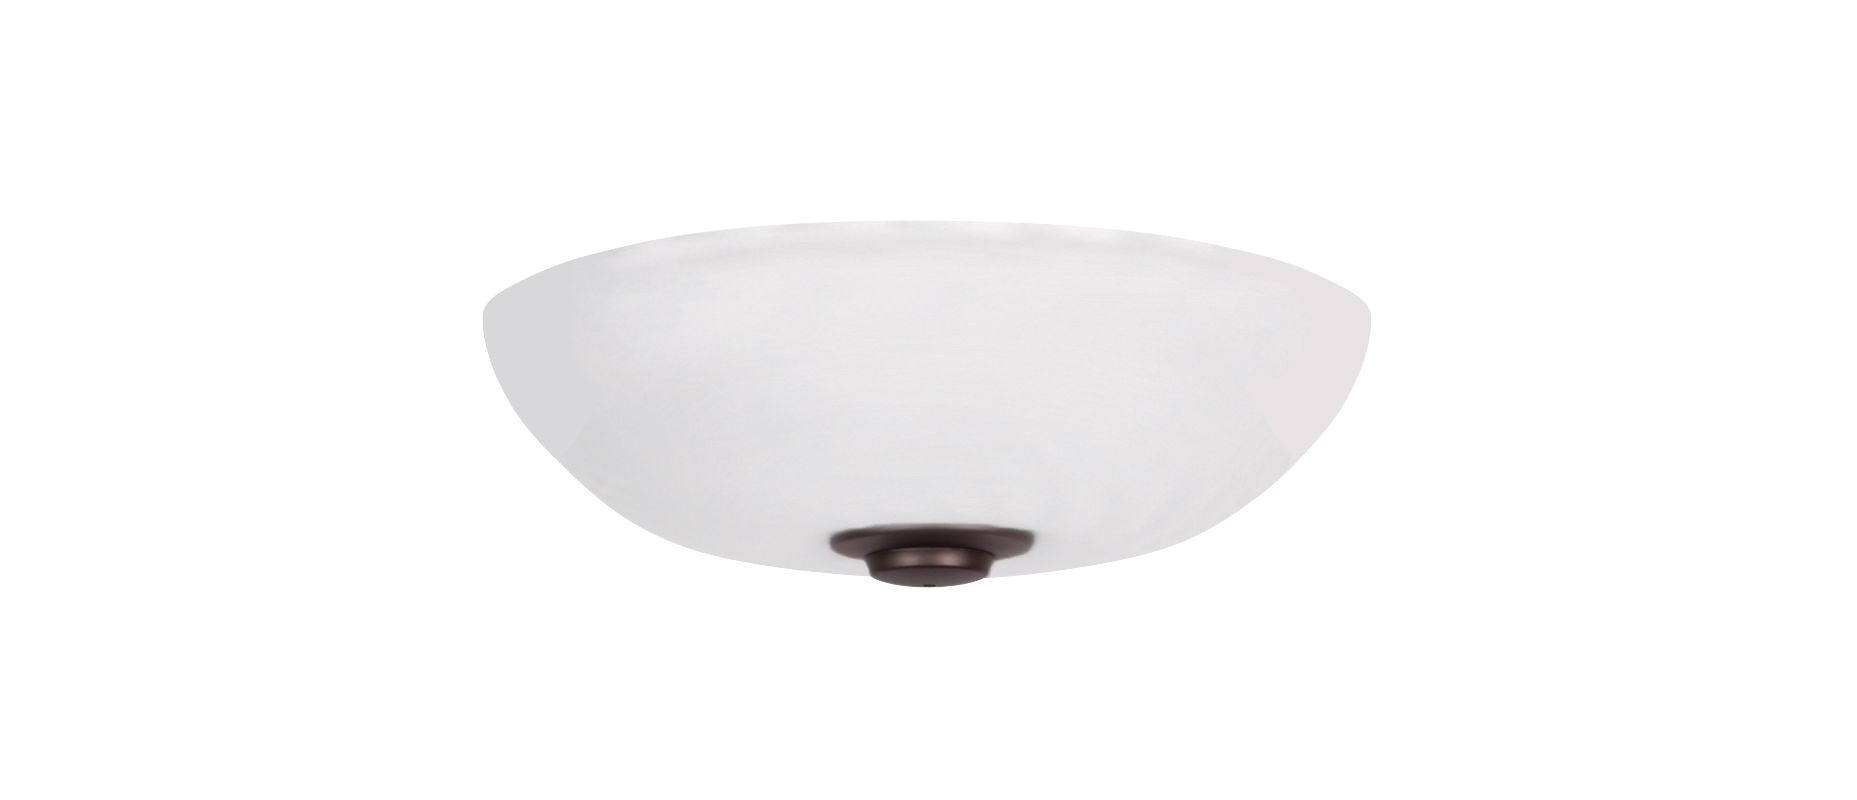 Emerson LK150OM Harlow Opal Matte Light Fixture Low Profile Finial Oil Sale $79.00 ITEM#: 2588452 MODEL# :LK150OMORB :